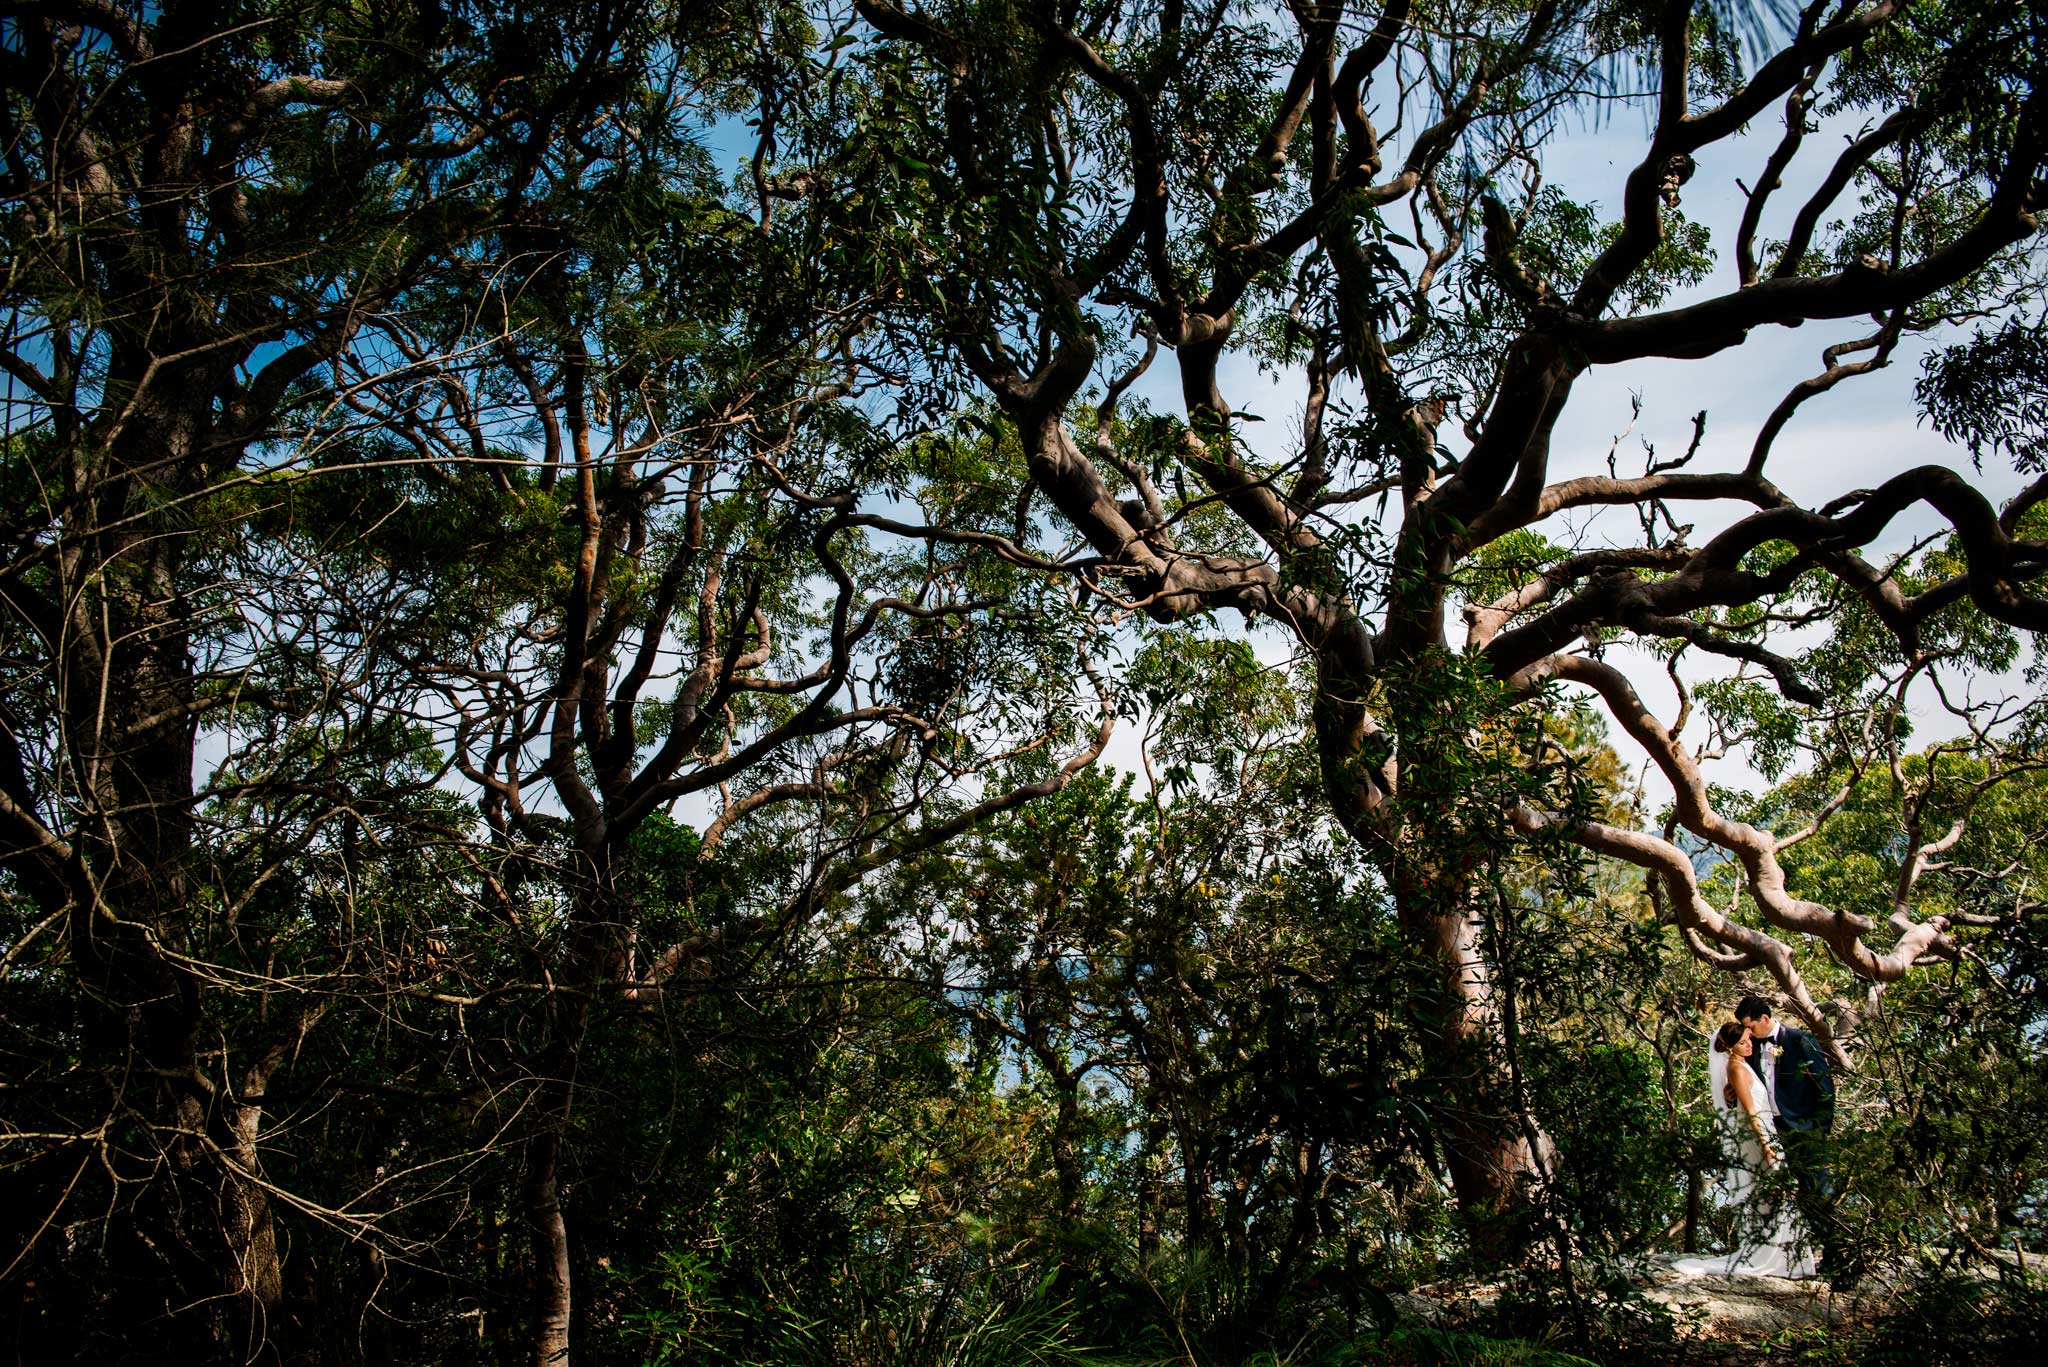 Newlyweds amongst gum trees in forest near Whale beach